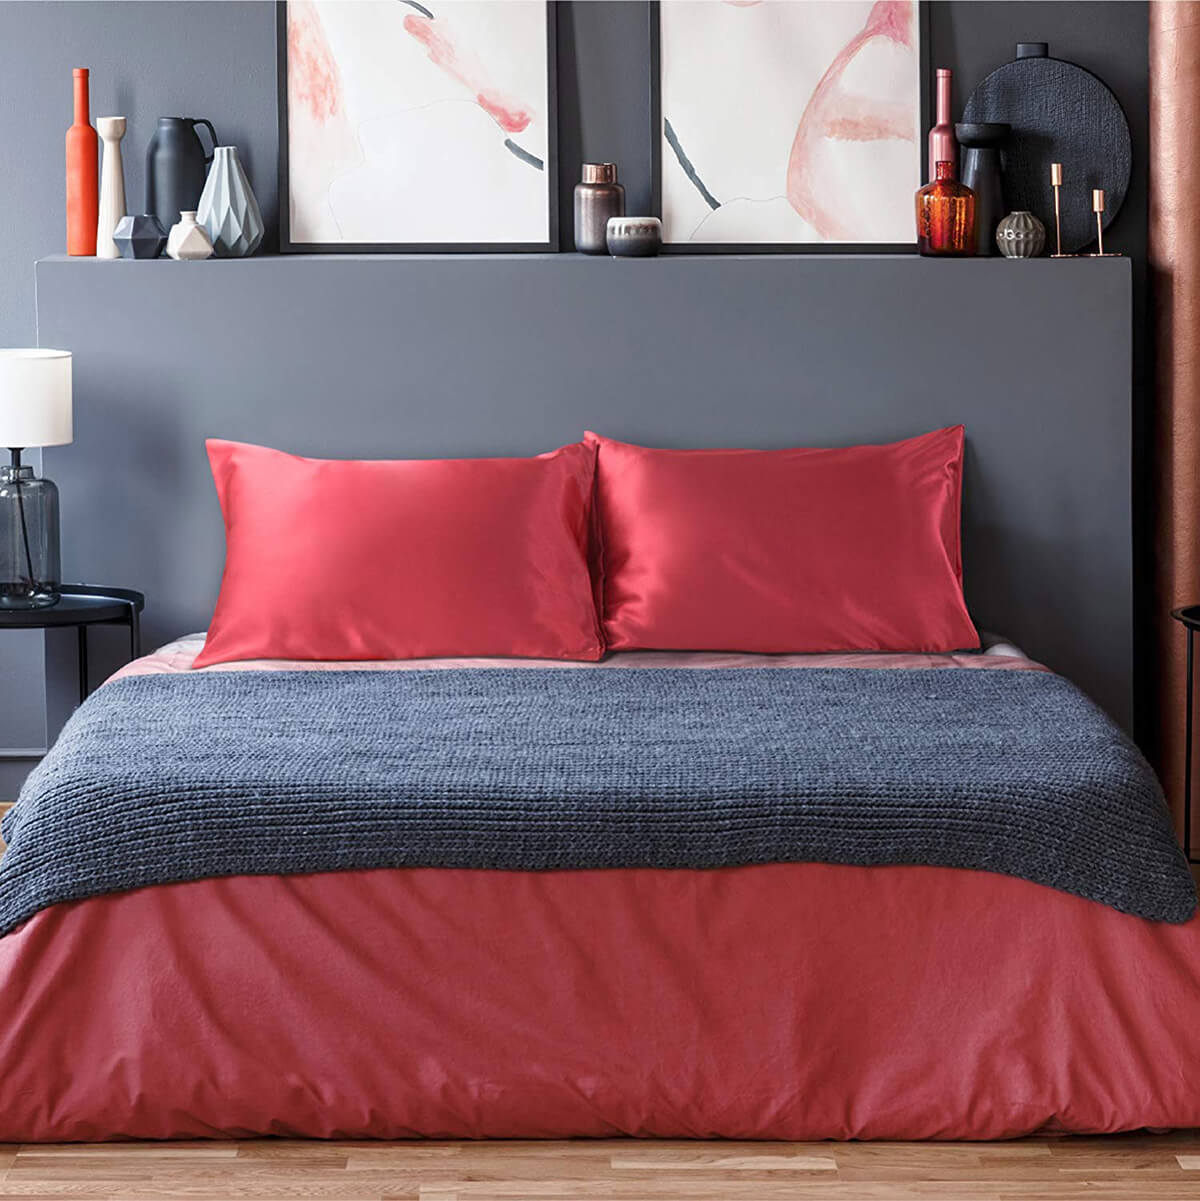 A Distinct and Lustrous Pillowcase that Won't Break the Bank